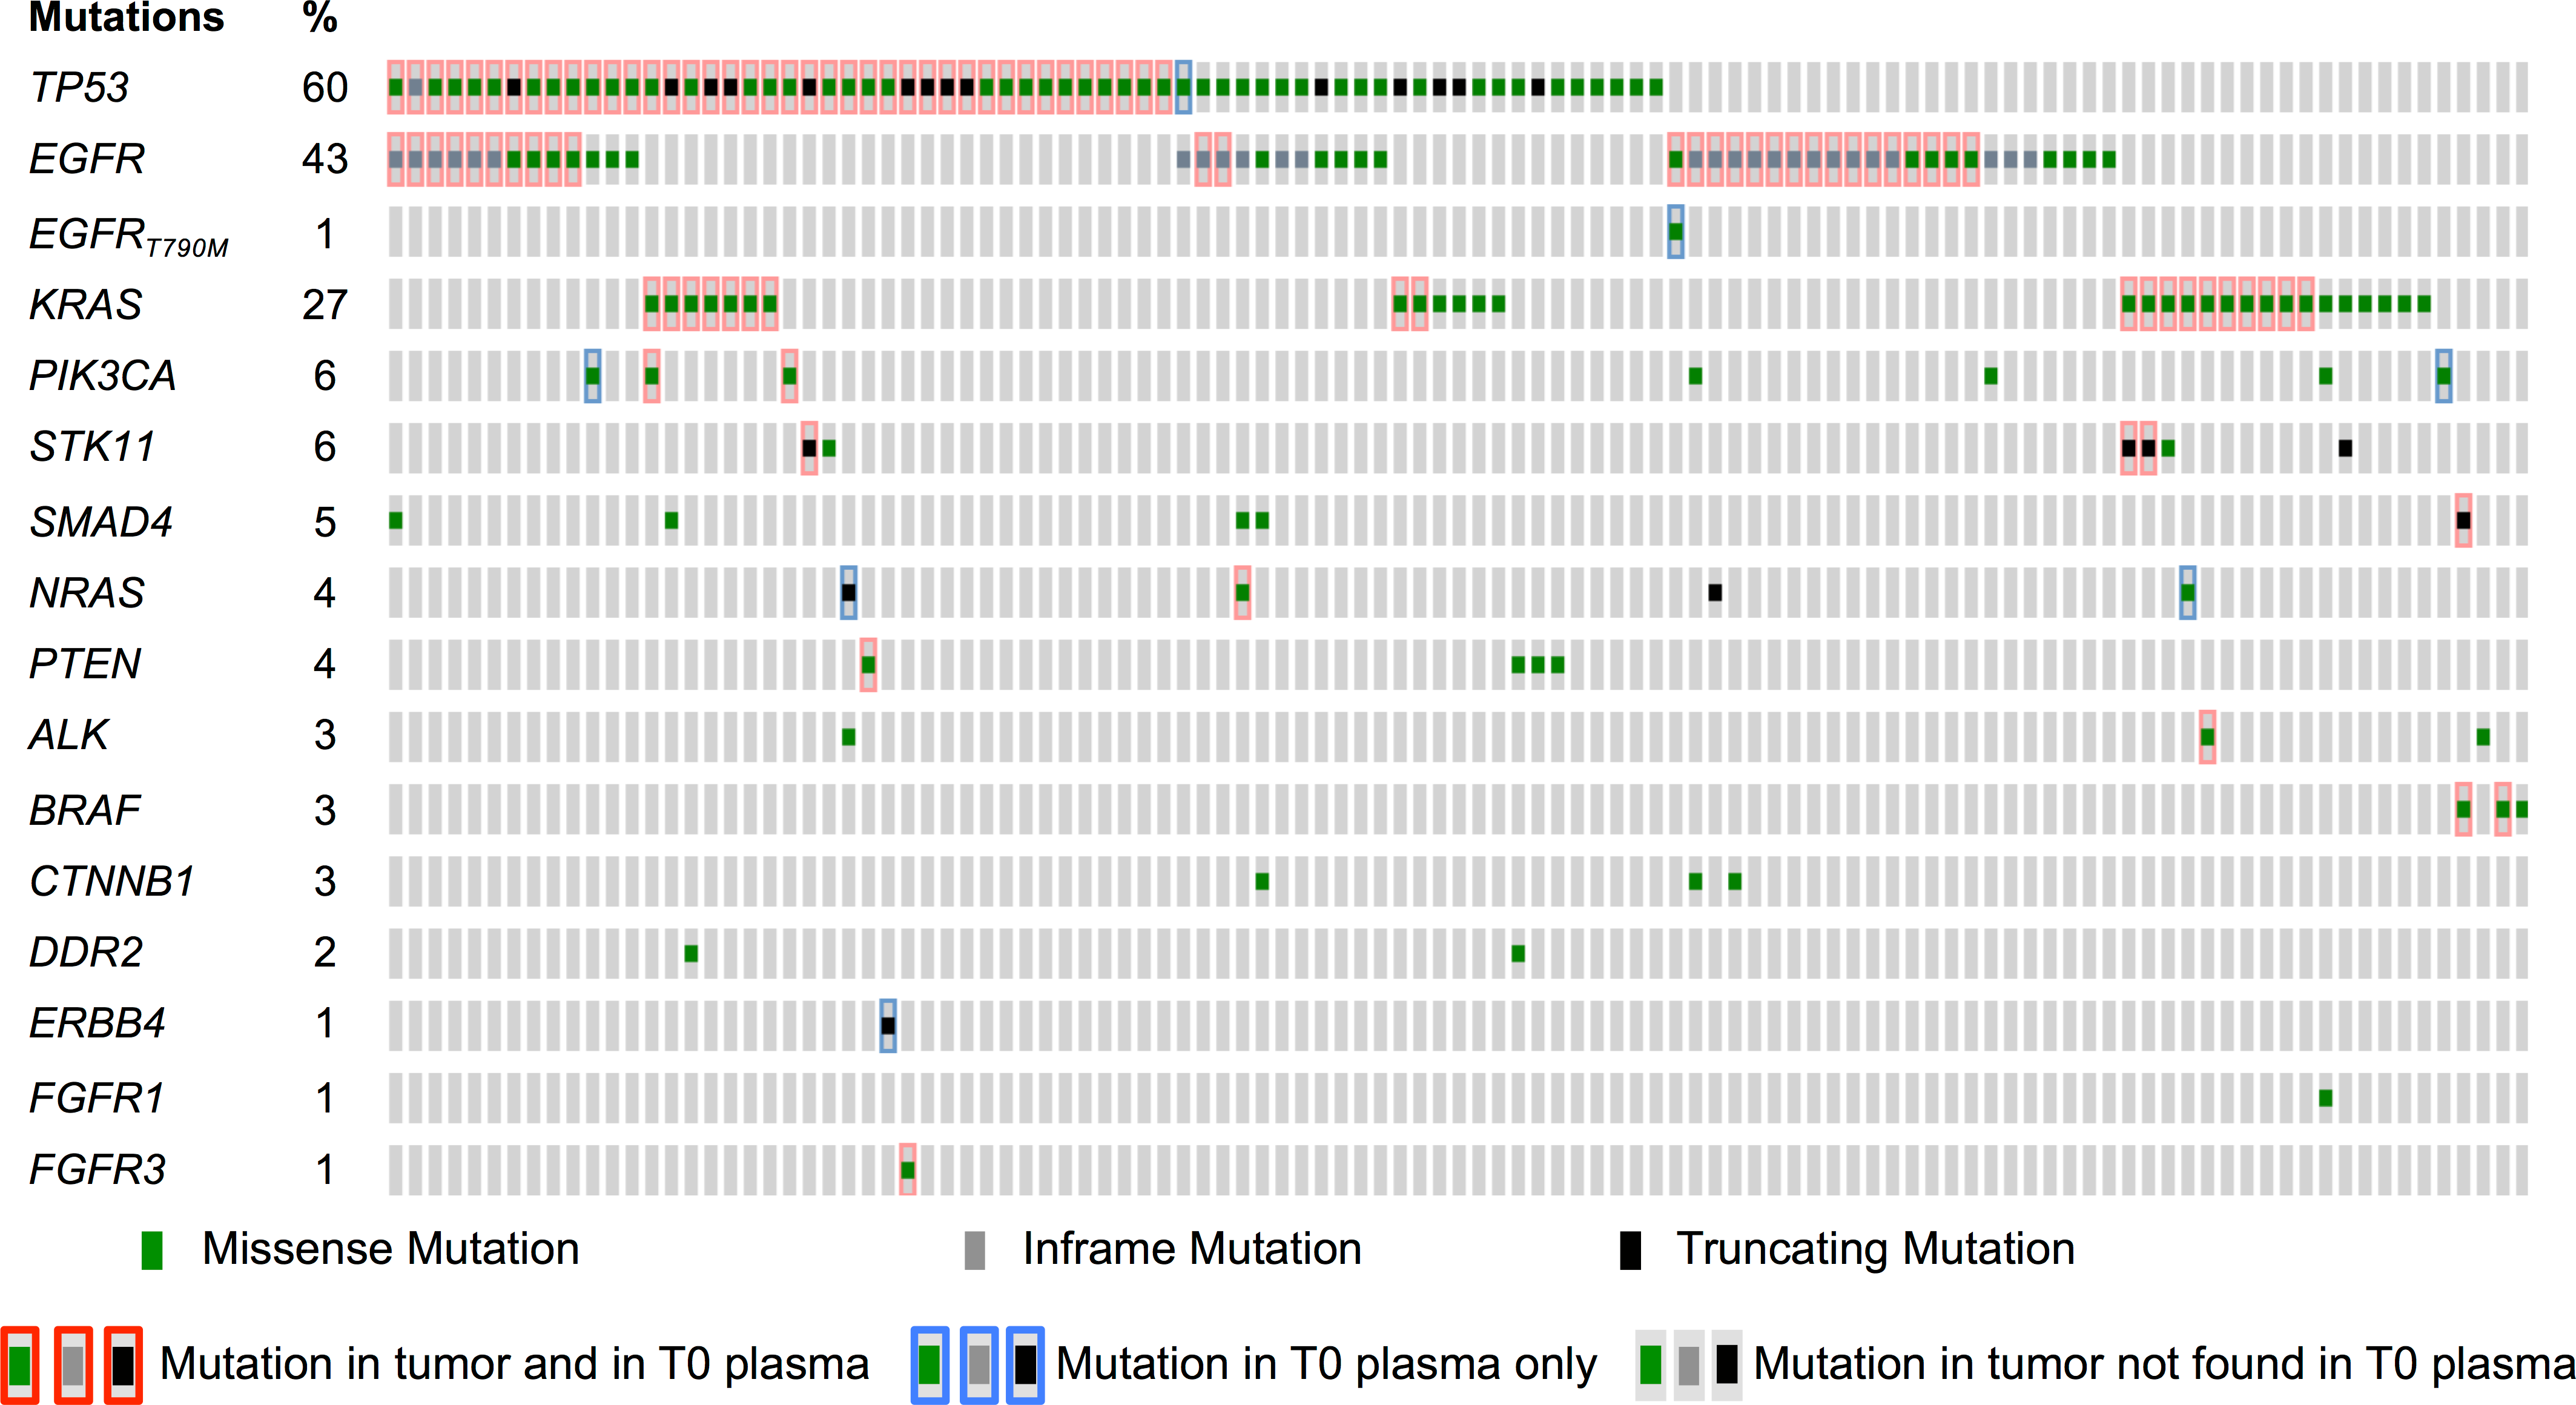 Mutations identified in tumor and in baseline plasma samples.